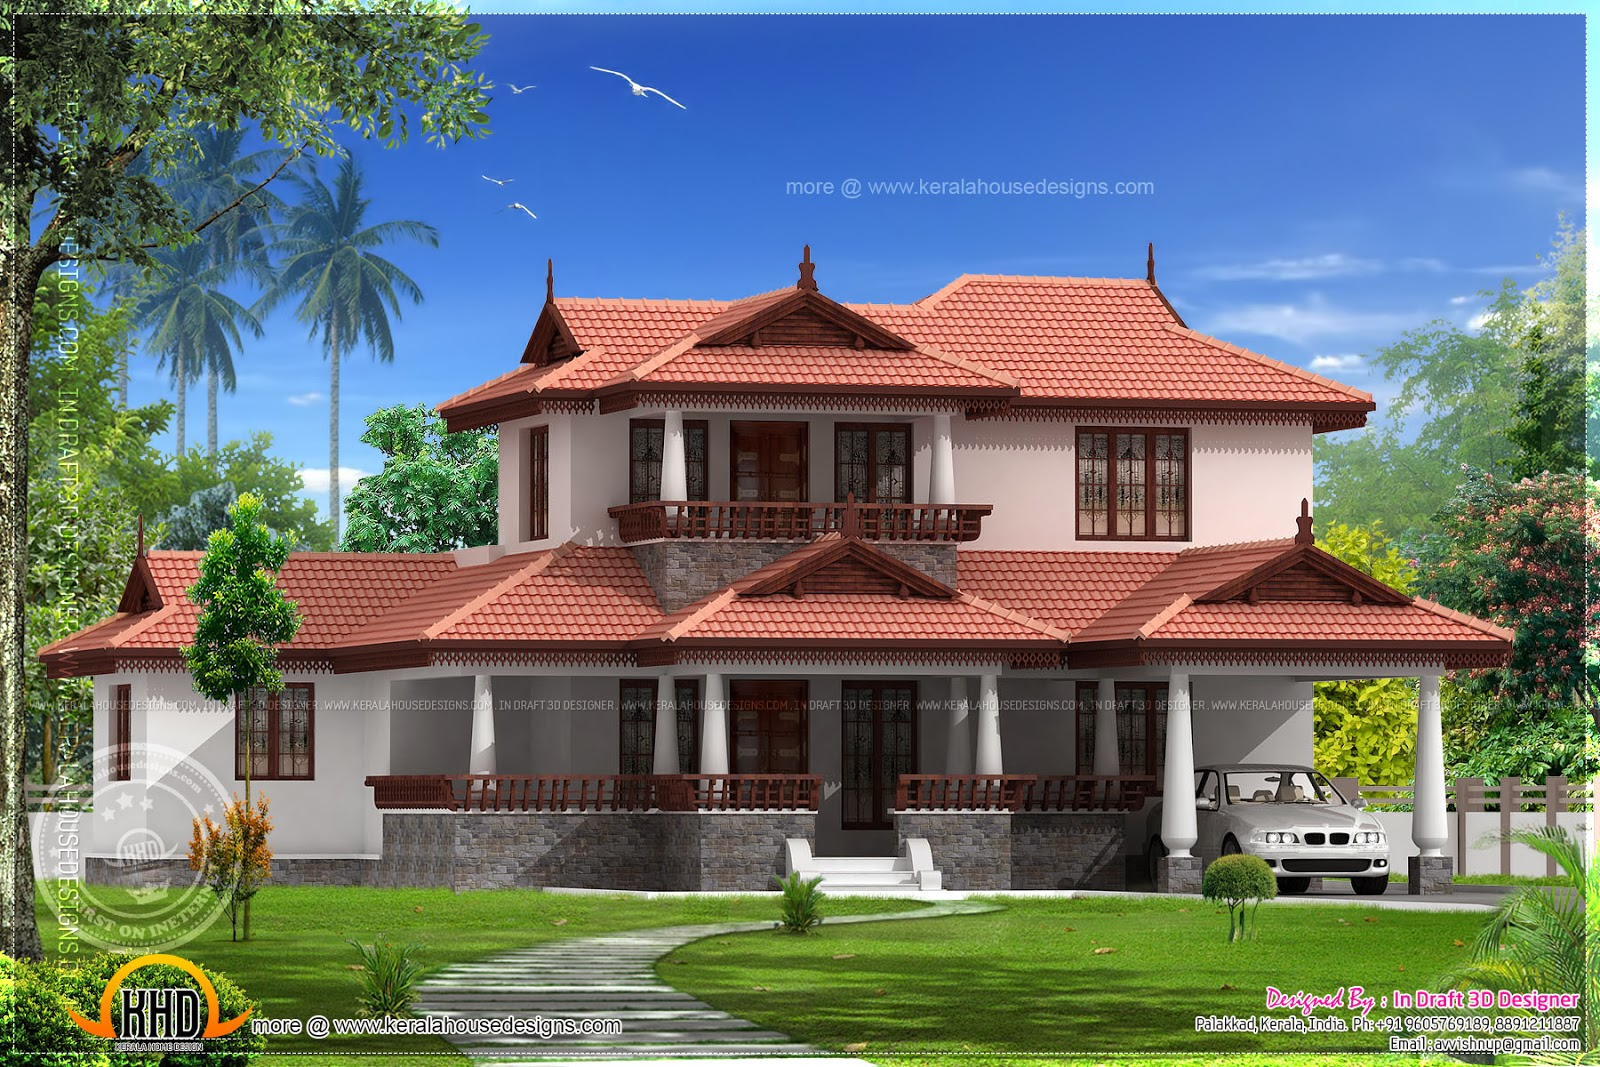 3 bedroom kerala model home elevation kerala home design for Kerala house models and plans